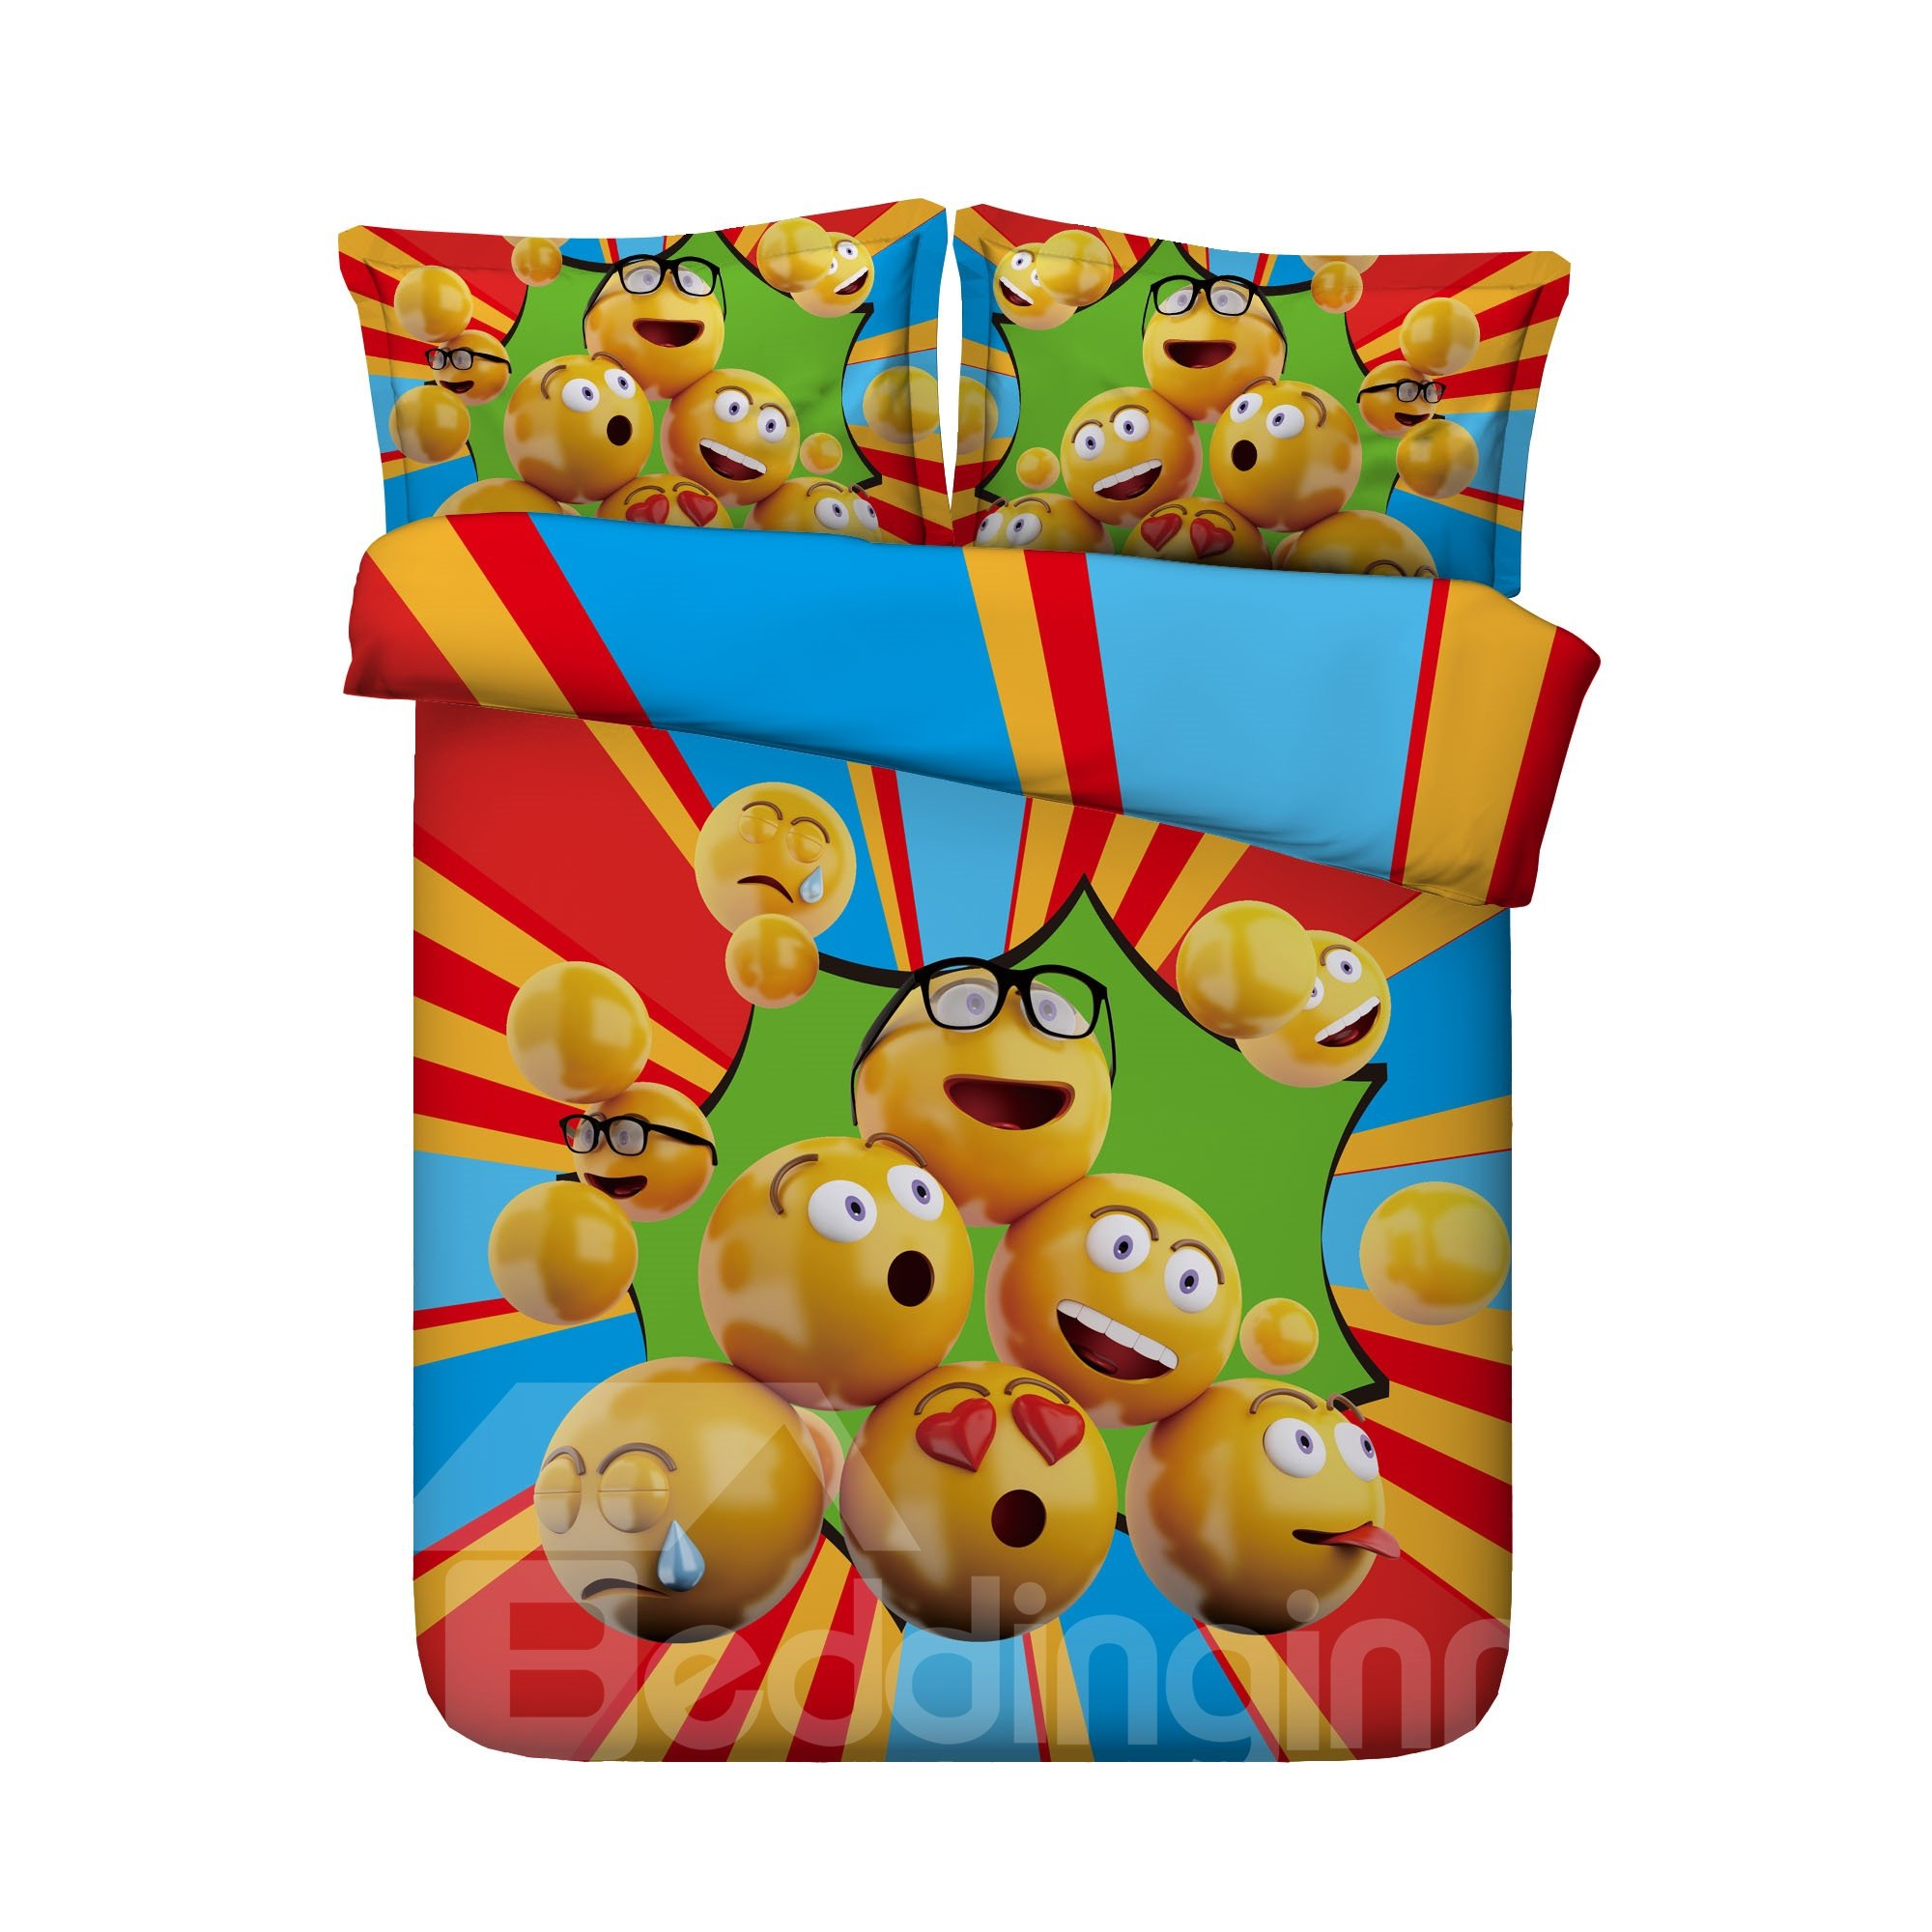 65 Colorful Funny Peas Printed 4 Piece Bedding Sets Duvet Covers